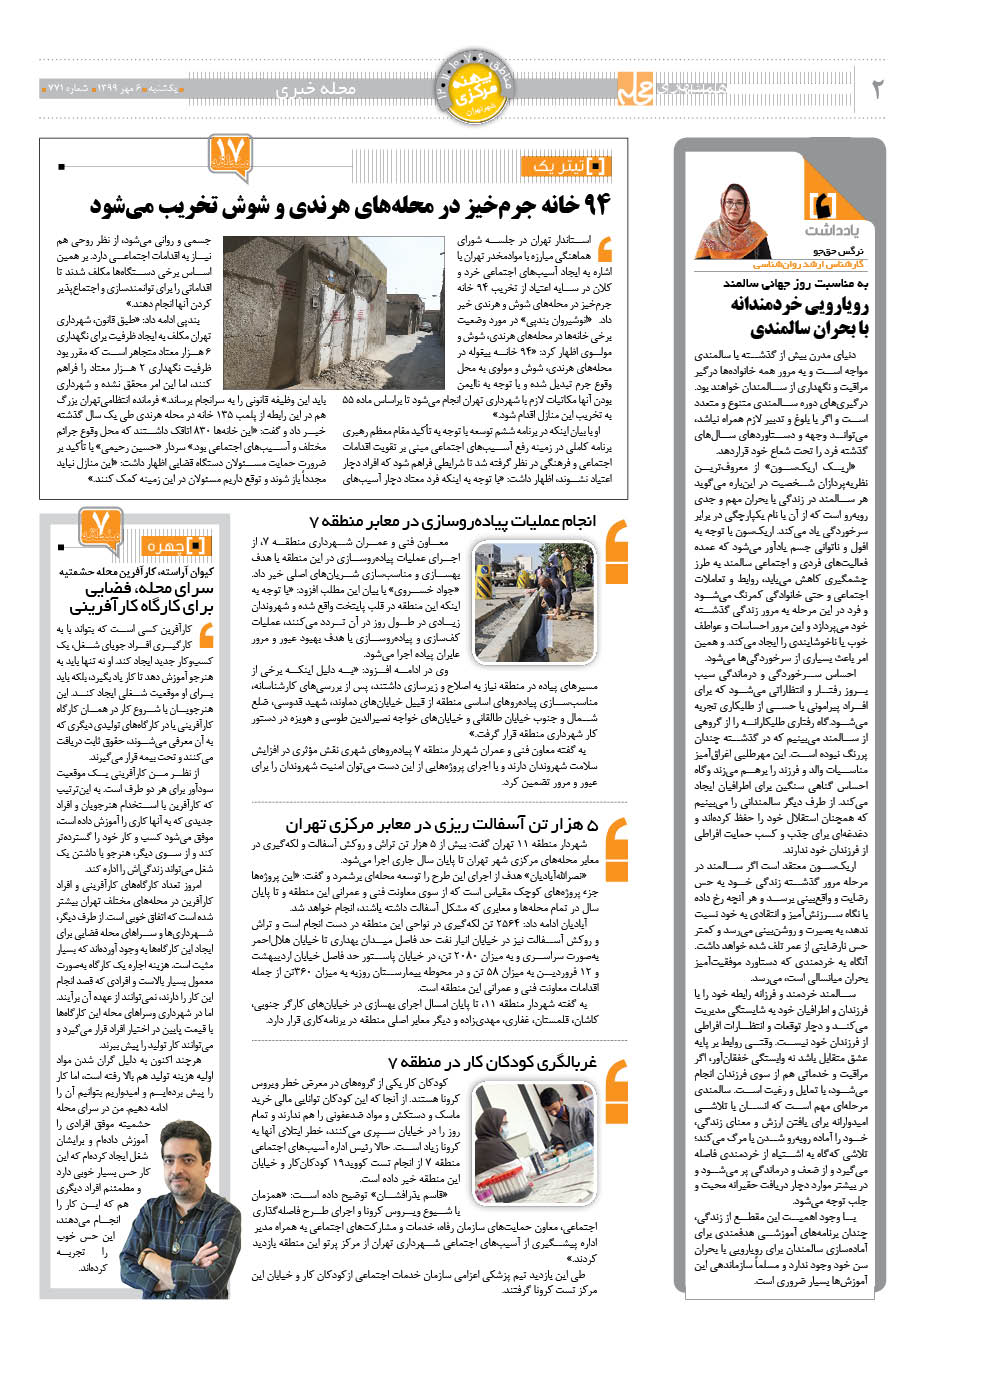 http://newspaper.hamshahrionline.ir//img/newspaper_pages/1399/07-%20mehr/06/mahalleh/cover/02.jpg